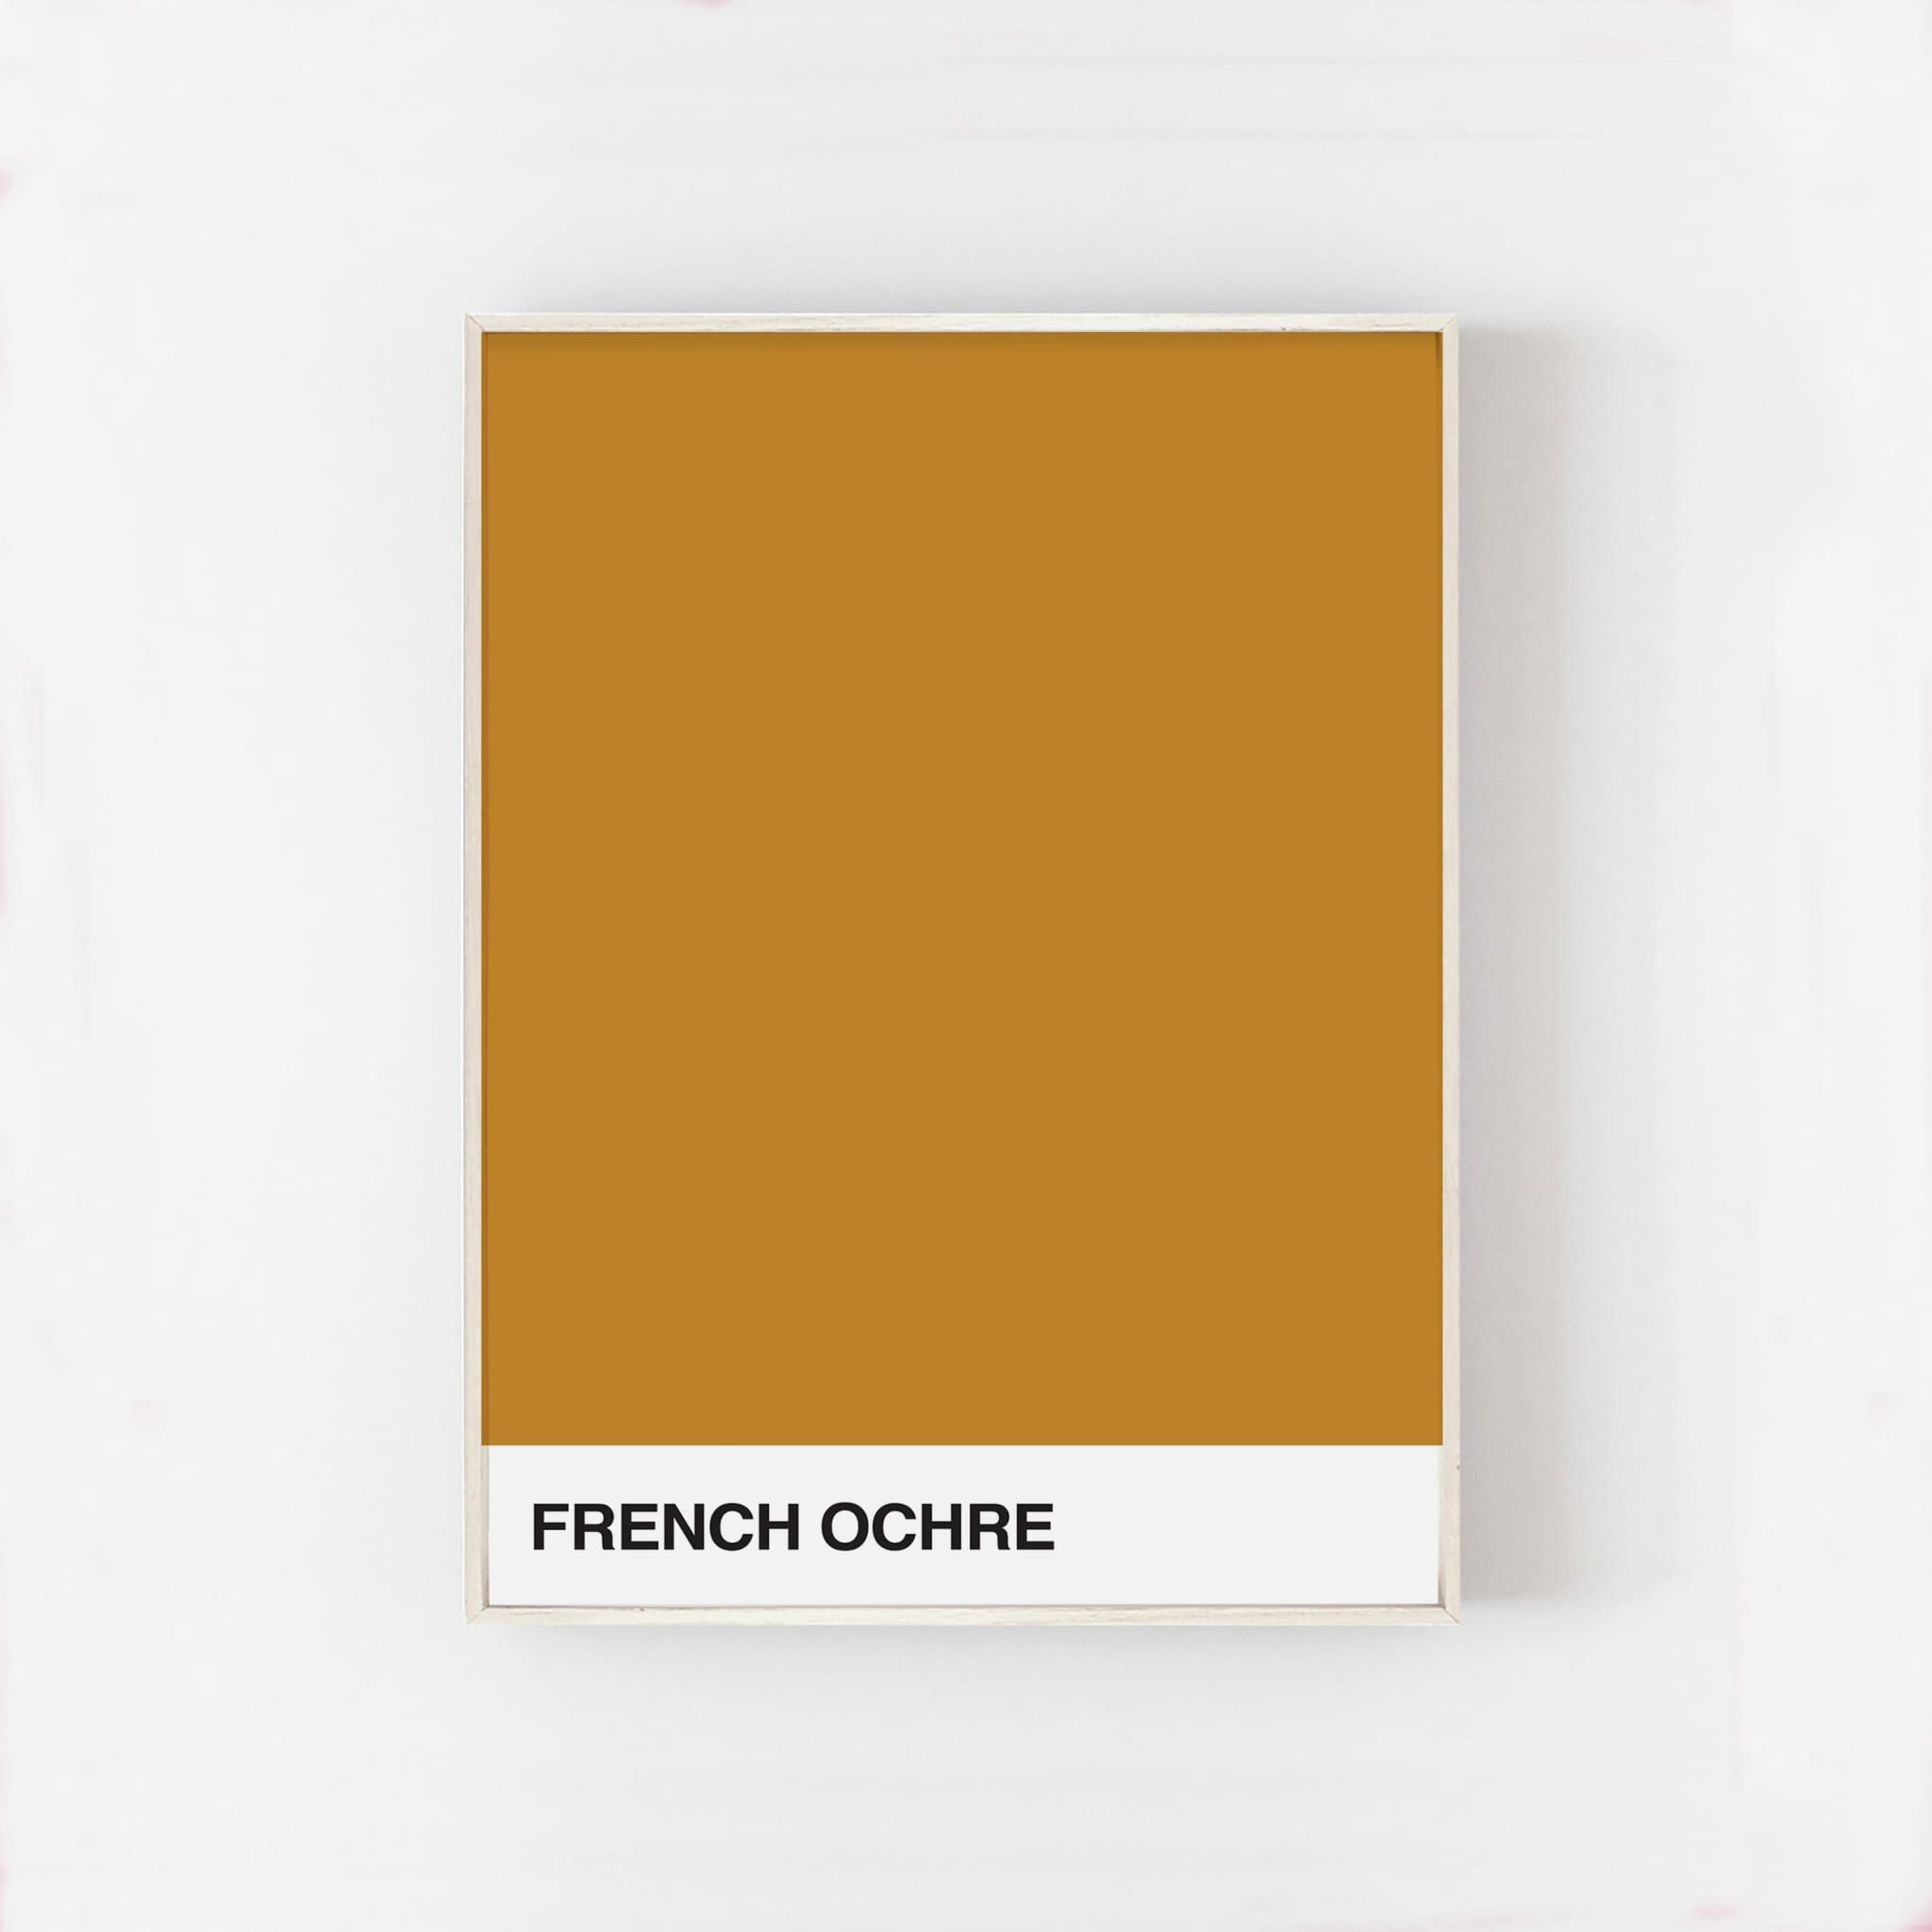 FRENCH OCHRE - HONEYMOON HOTEL